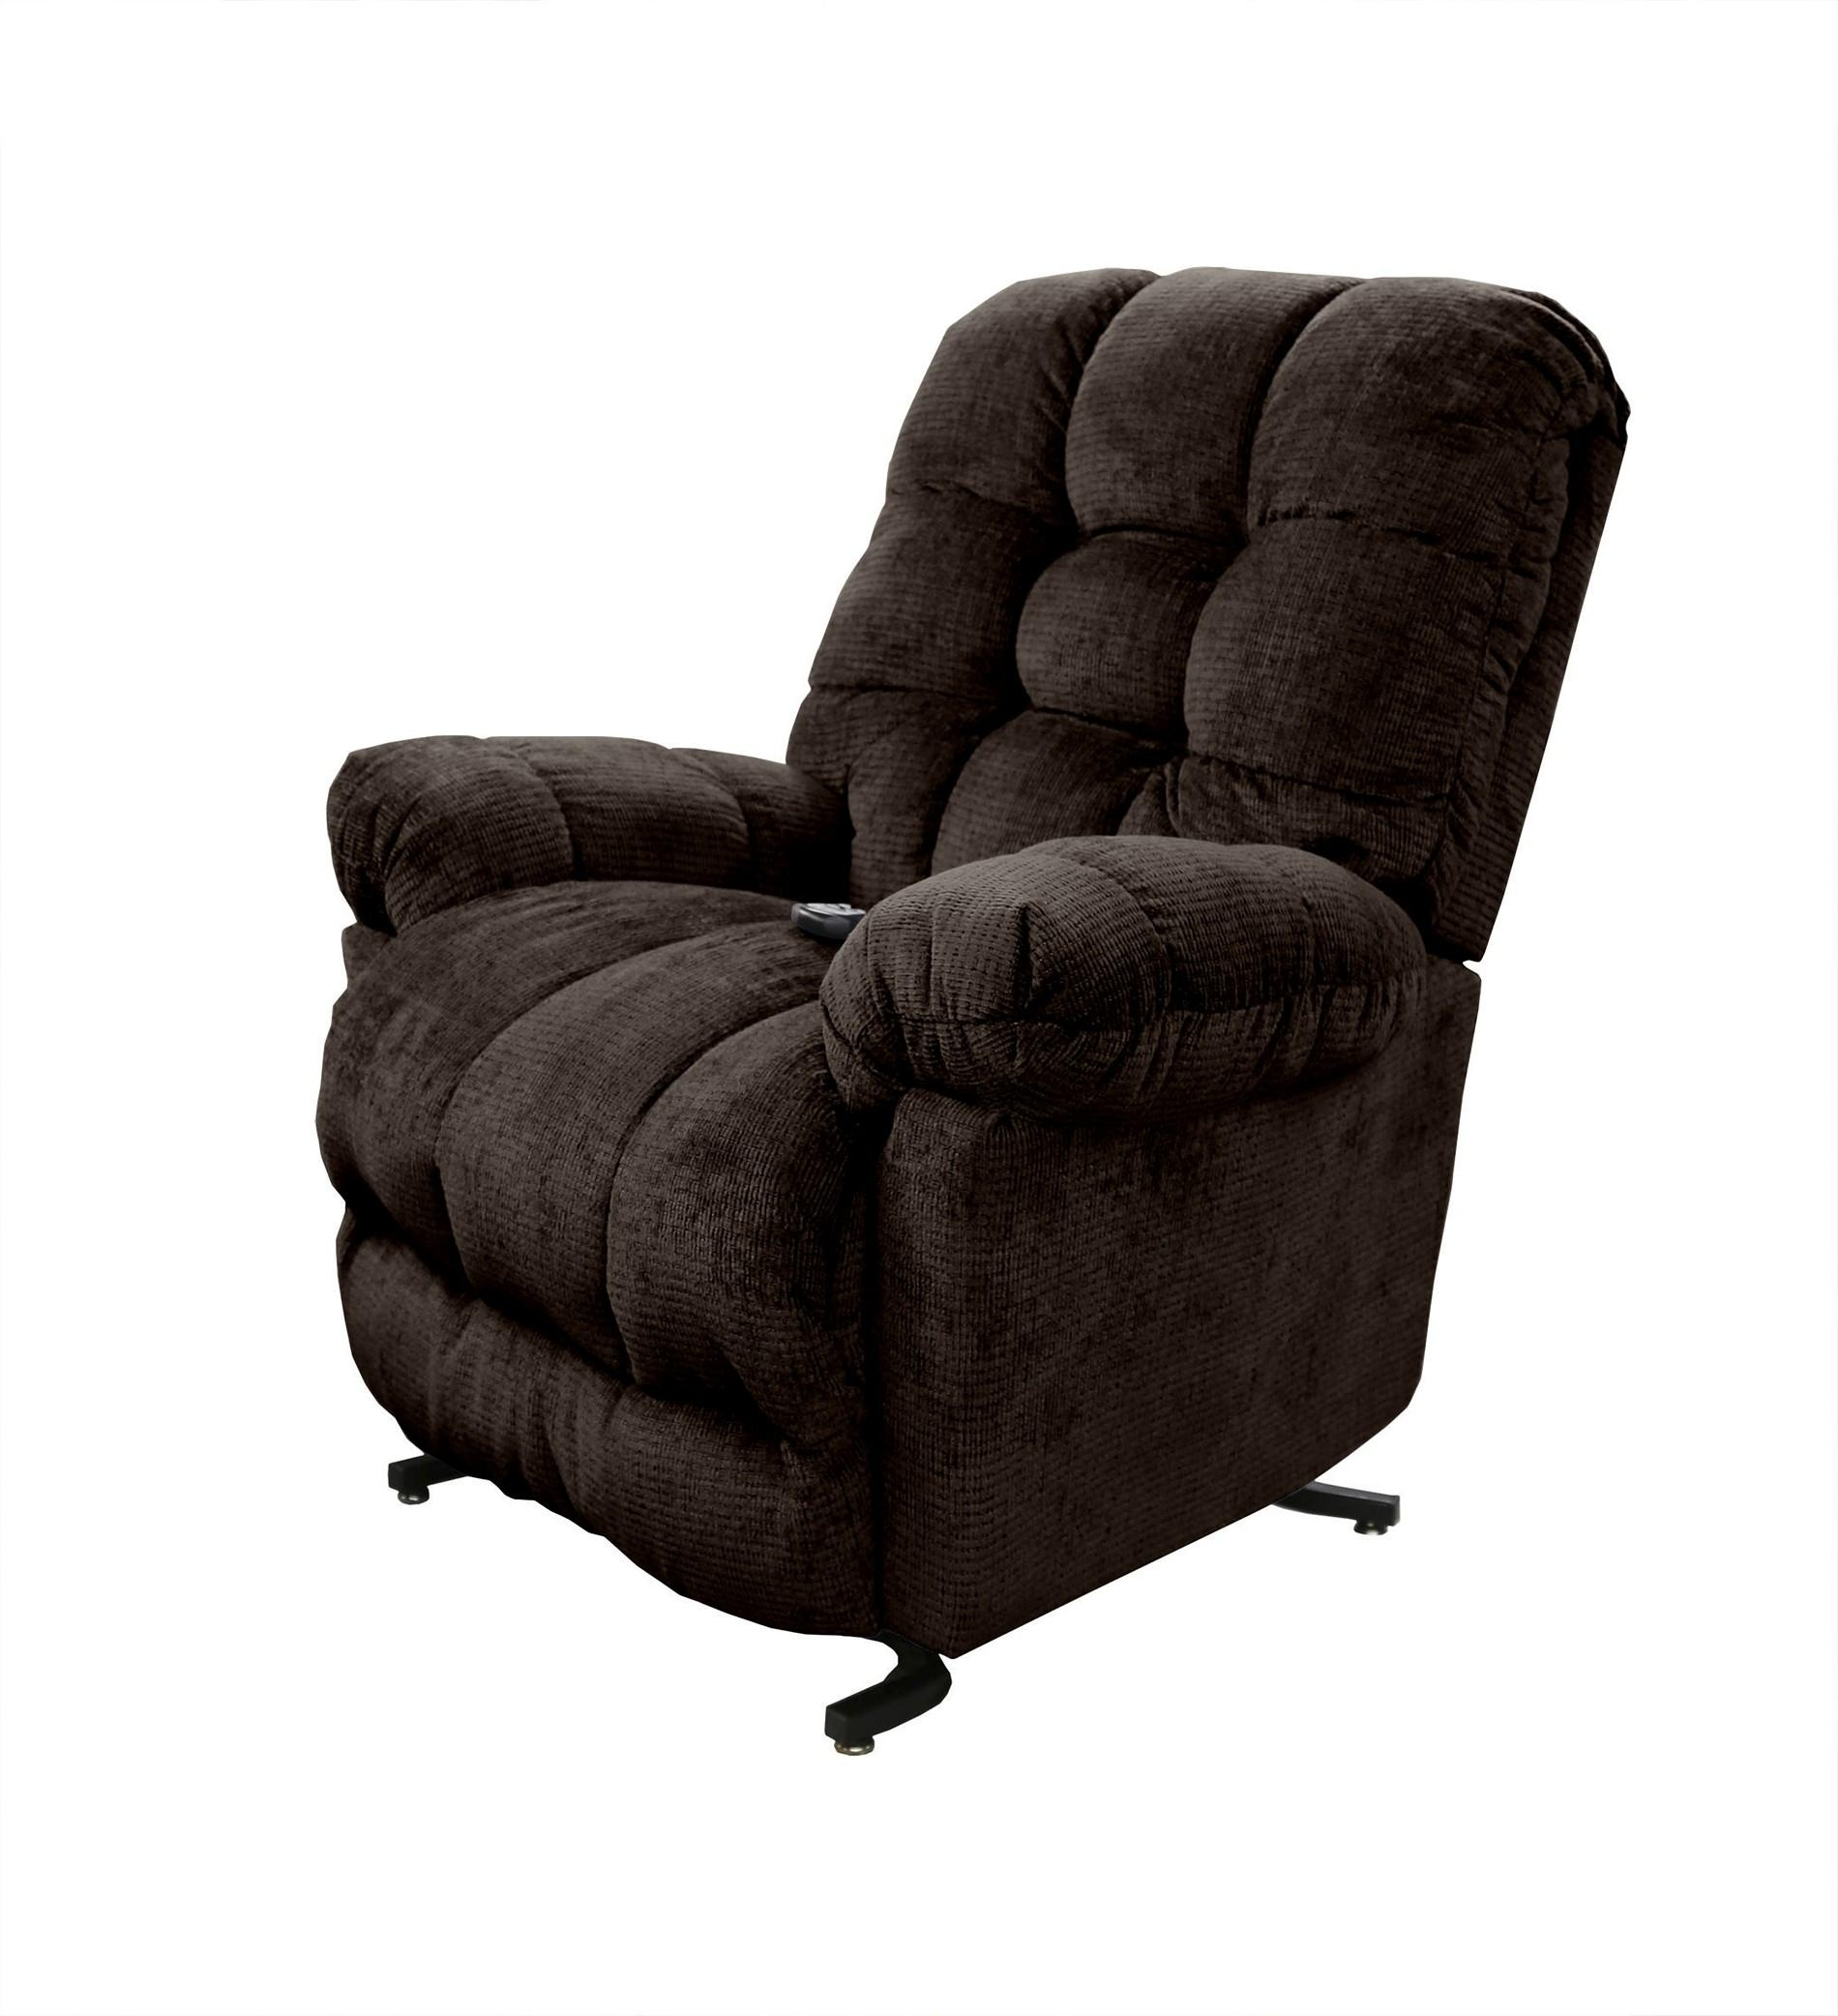 Sofas Center : Unusual Sears Reclining Sofa Images Design Recliner Regarding Unusual Sofa (View 18 of 20)